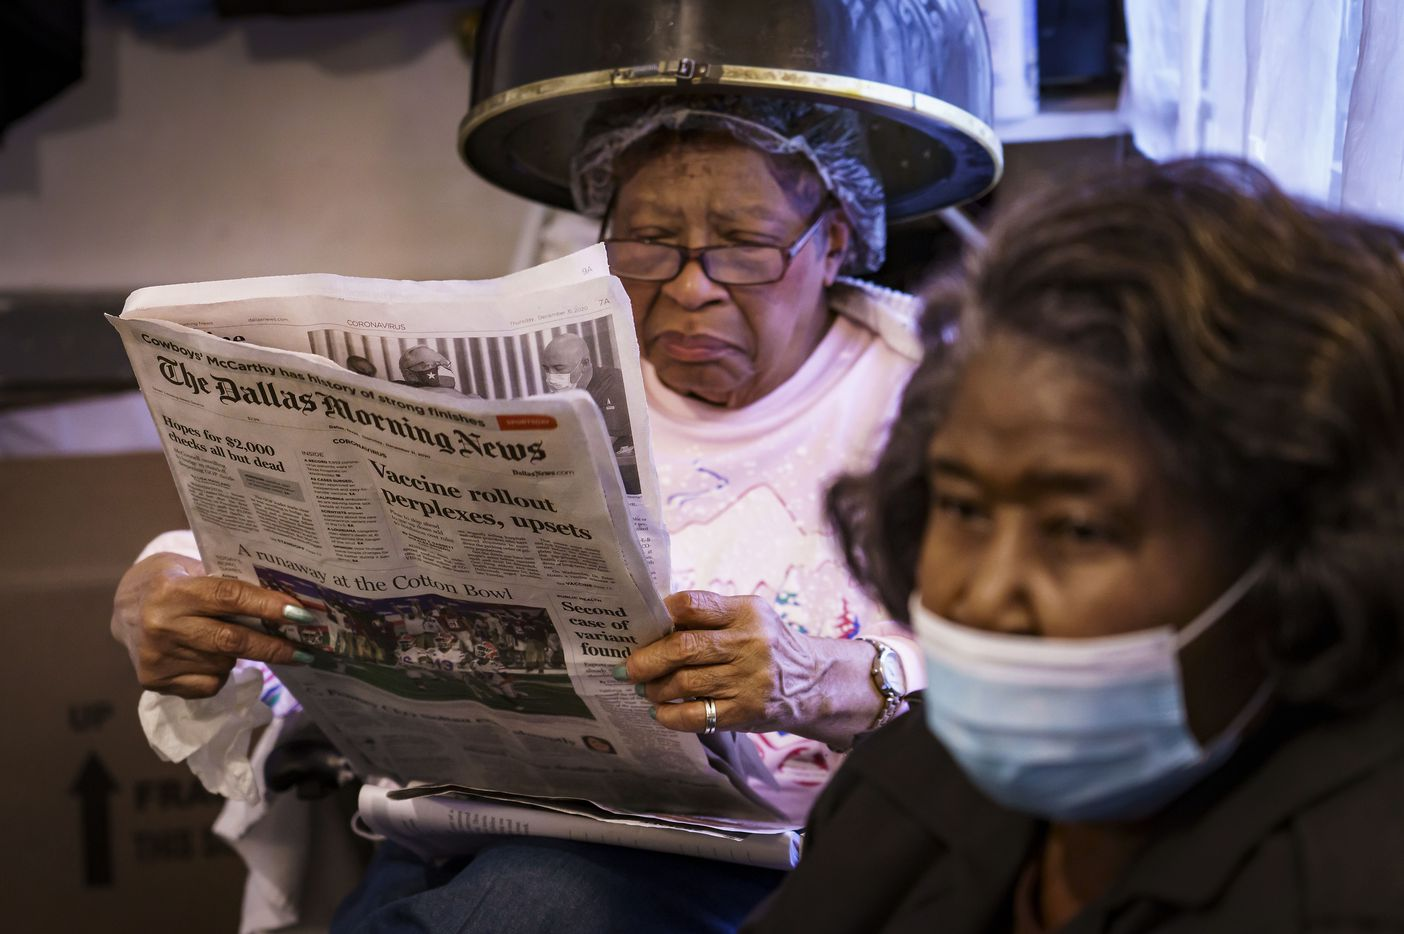 Vera Harris reads the newspaper as she sits under a hair dryer at Earnestine's Beauty Shop.